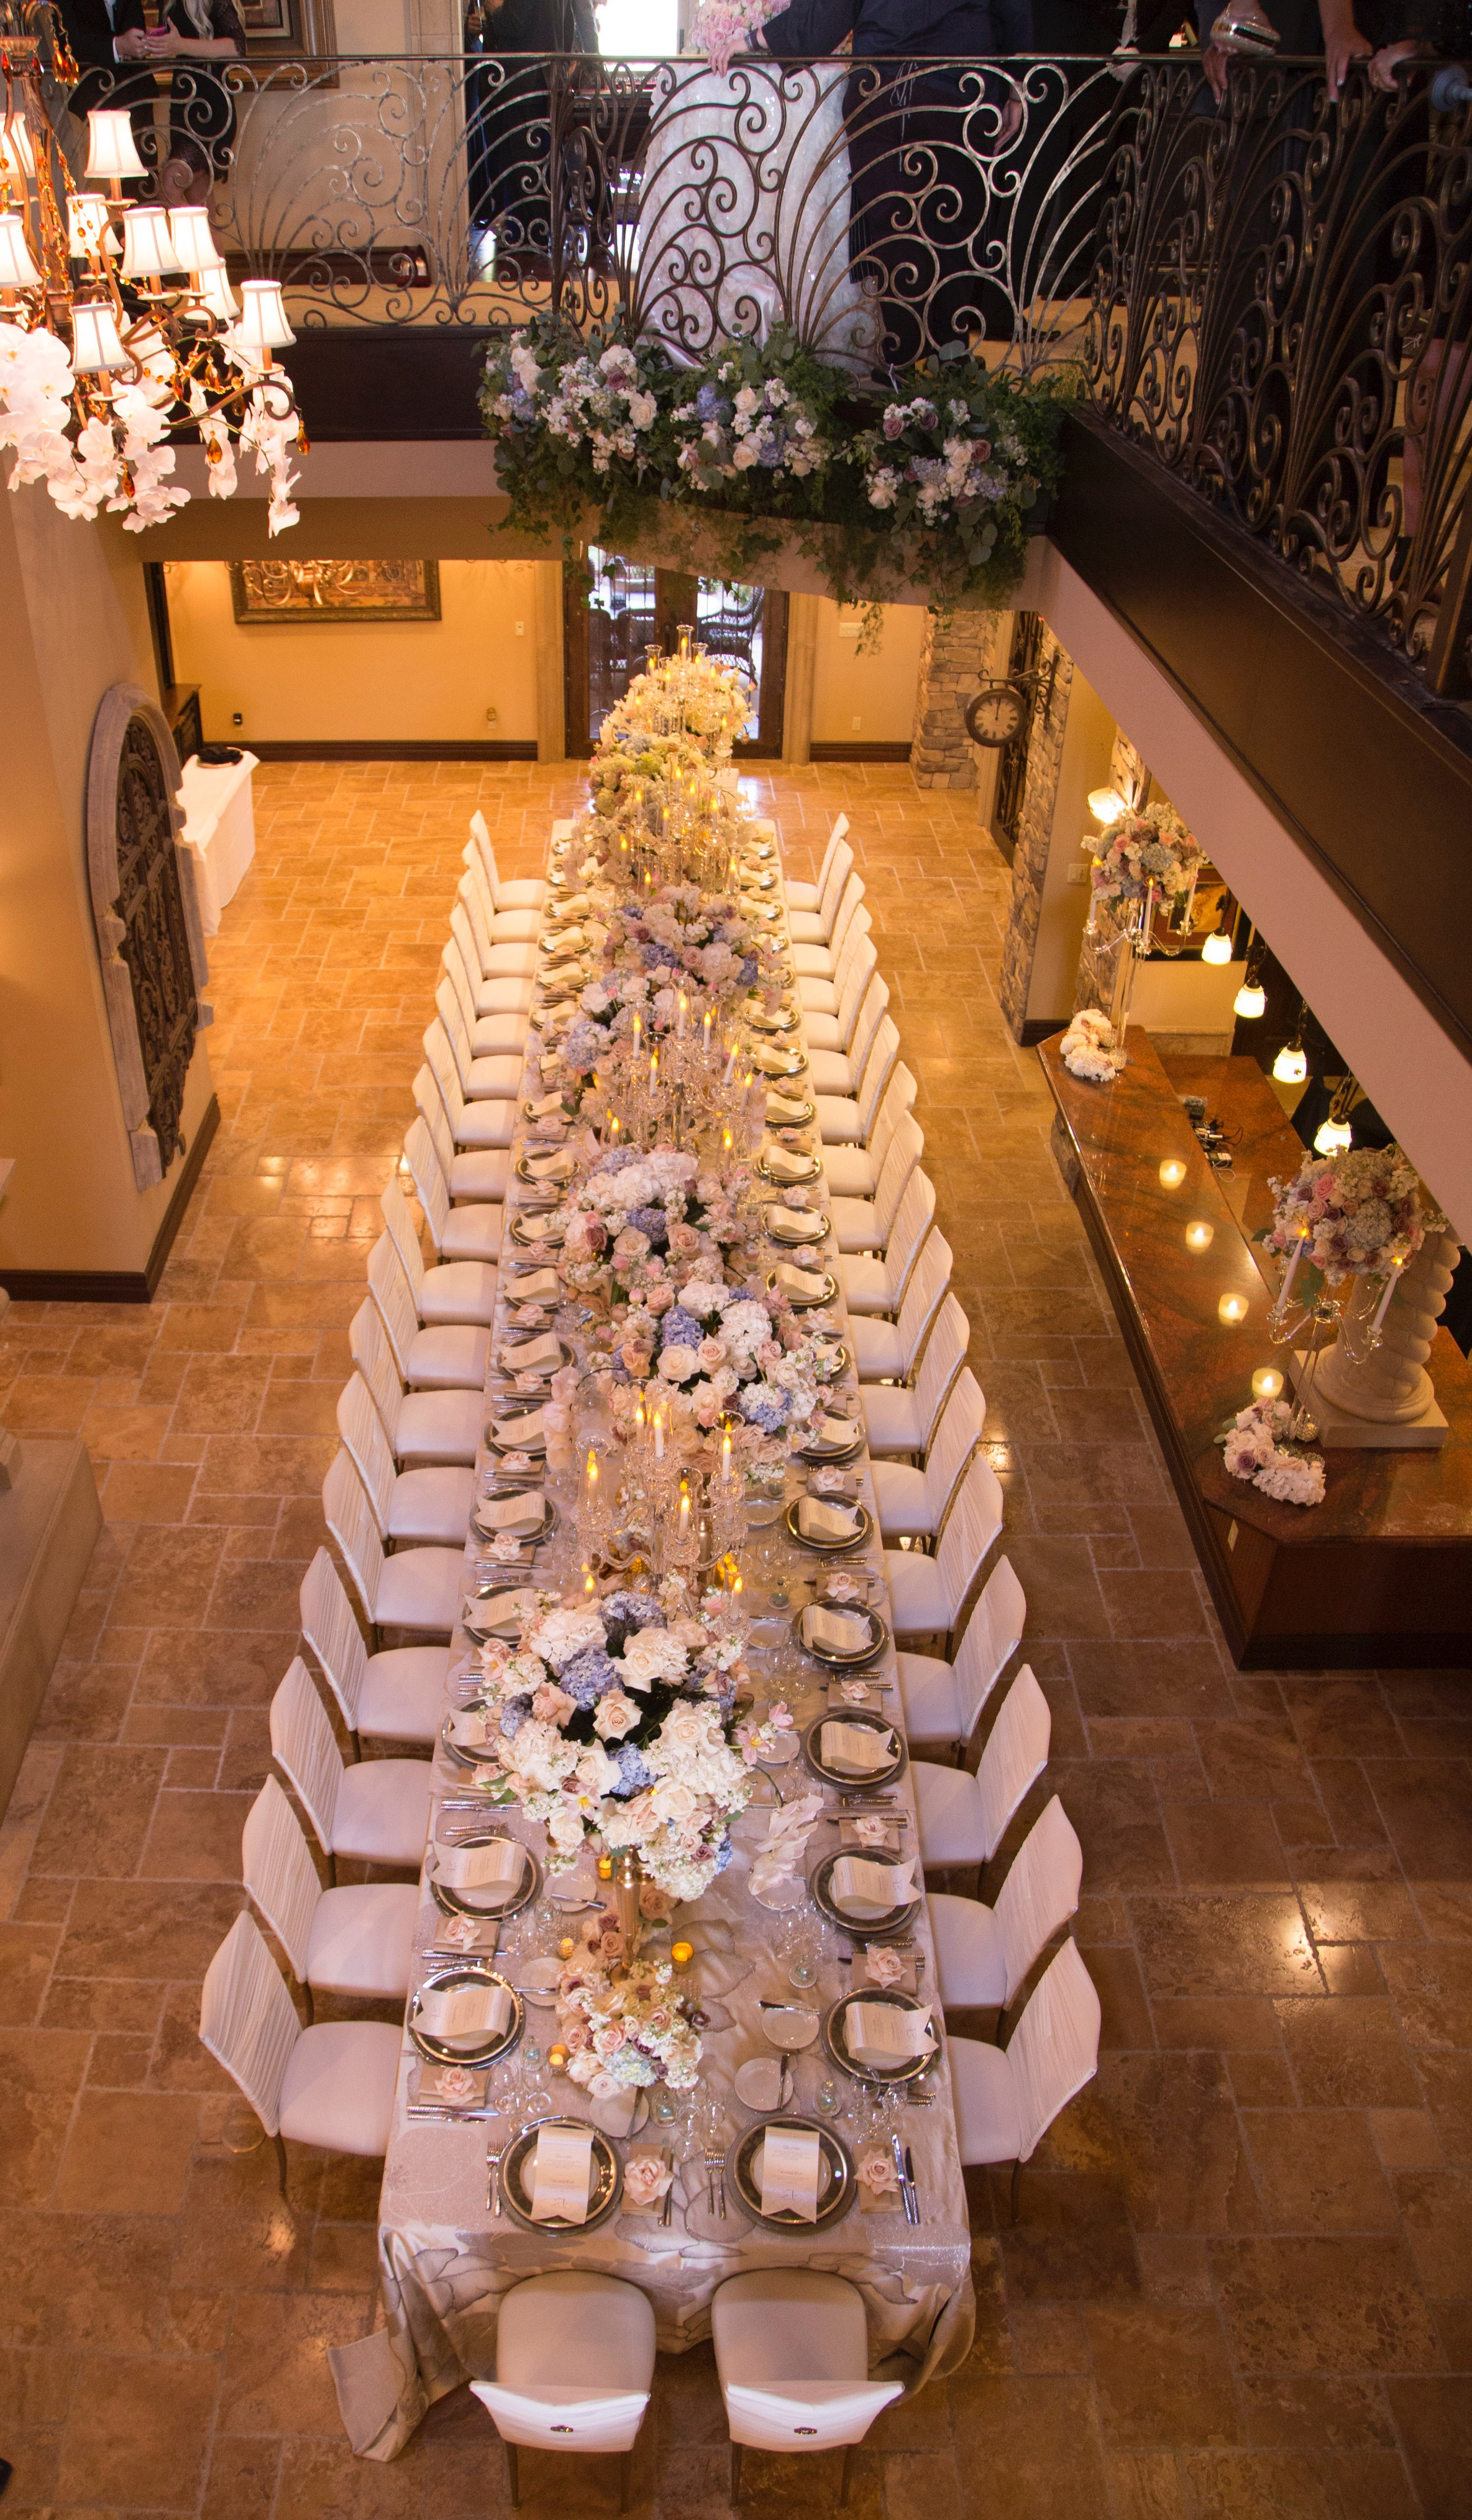 Royal long banquet table in the grand foyer of castle wedding